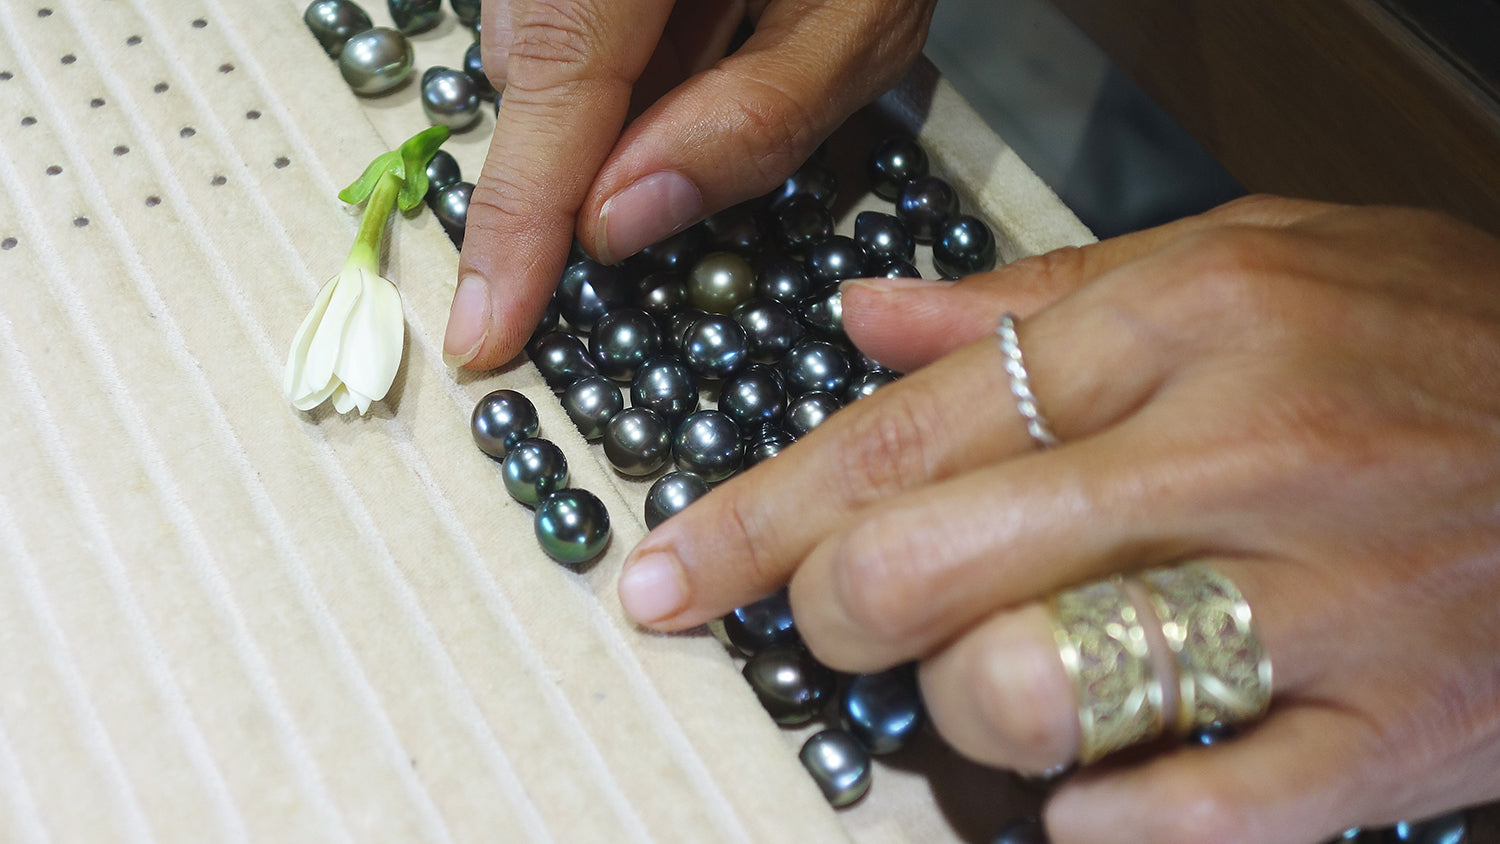 Pearls in Paradise: Arabel's Trip to an Eco-Friendly Polynesian Pearl Farm